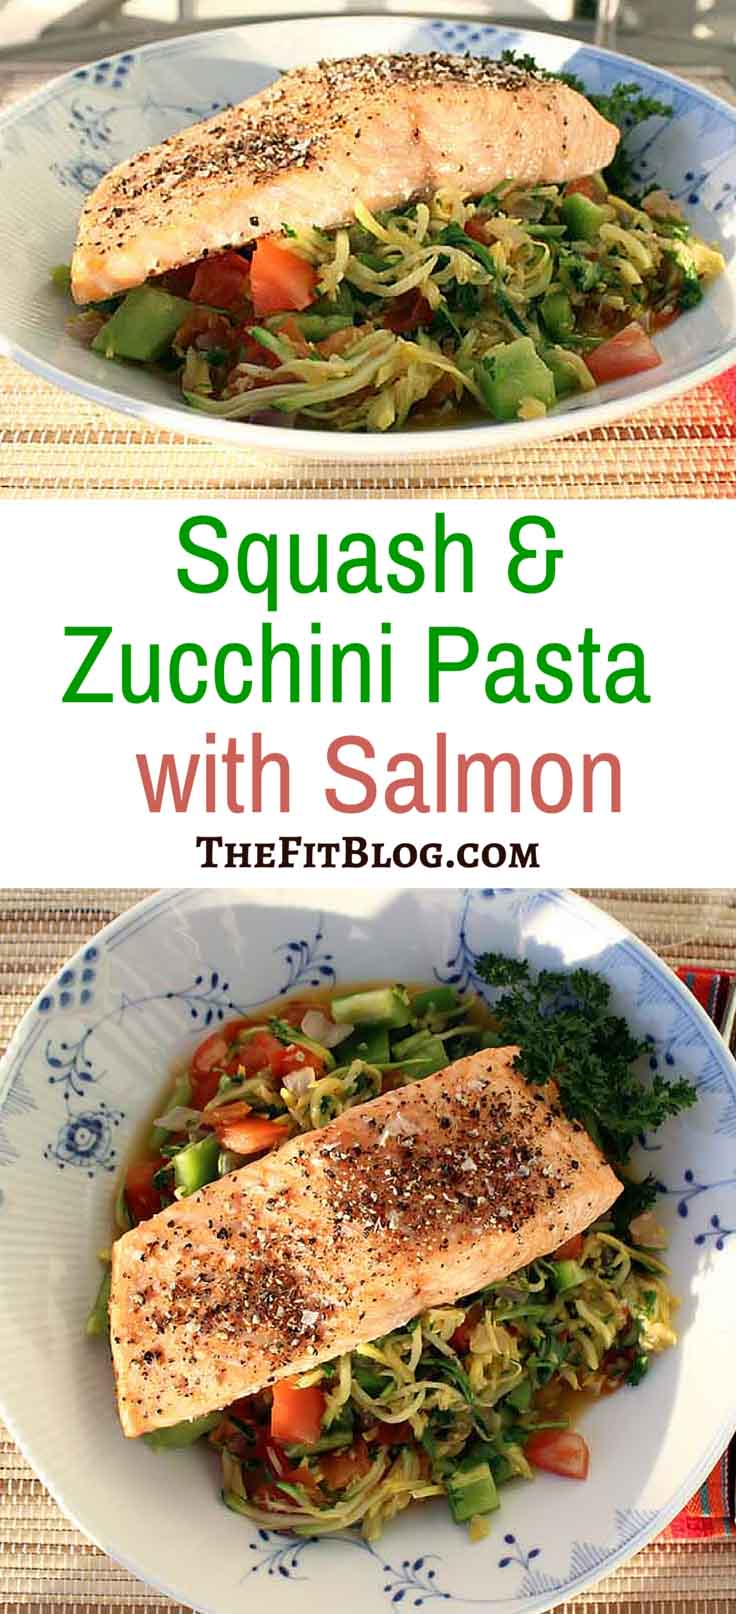 If you are just HUNGRY, Salmon with Squash and Zucchini Pasta really hits the spot. It's full of good, nutrient-rich veggies and provides plenty of protein and Omega 3 fatty acids. You can cook it in less than 20 min, it's super healthy, and it will also keep you full for hours.